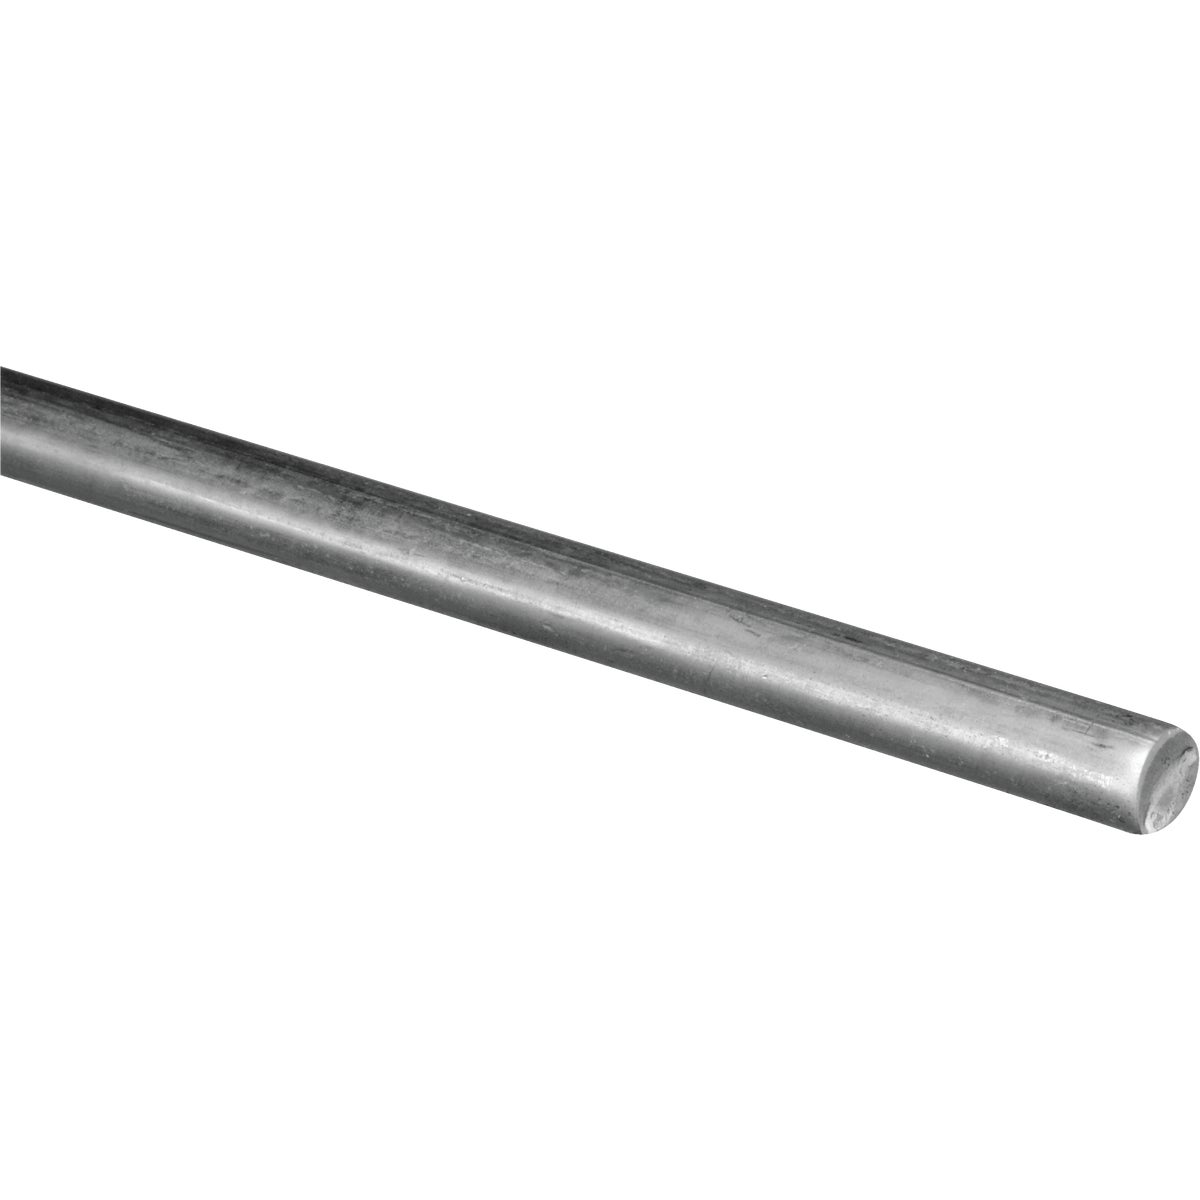 5/8X3' ROUND STEEL ROD - N179812 by National Mfg Co